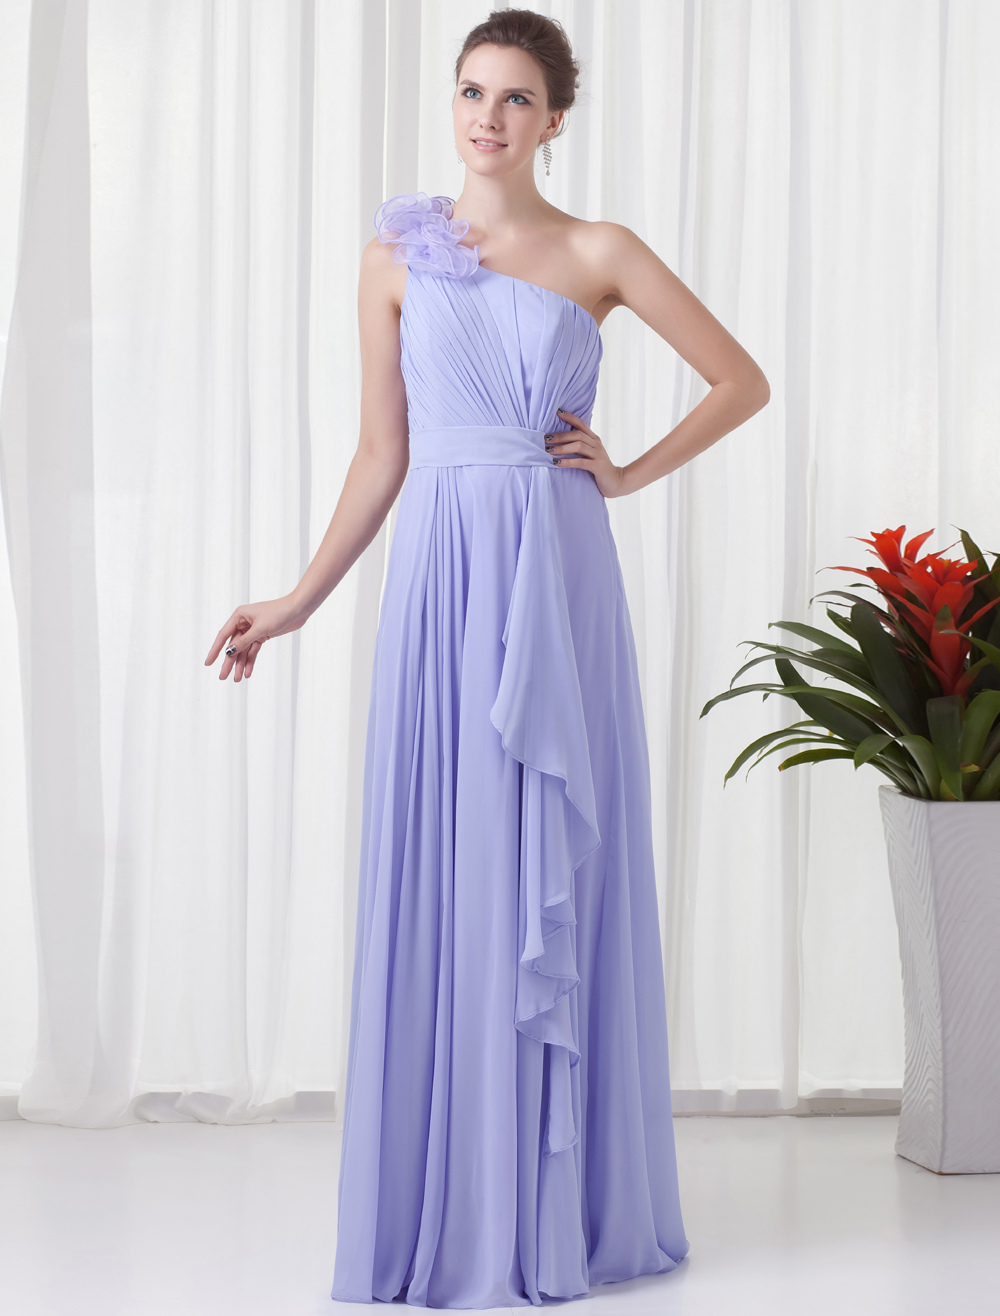 Sheath One-Shoulder Lavender Chiffon Bridesmaid Dress